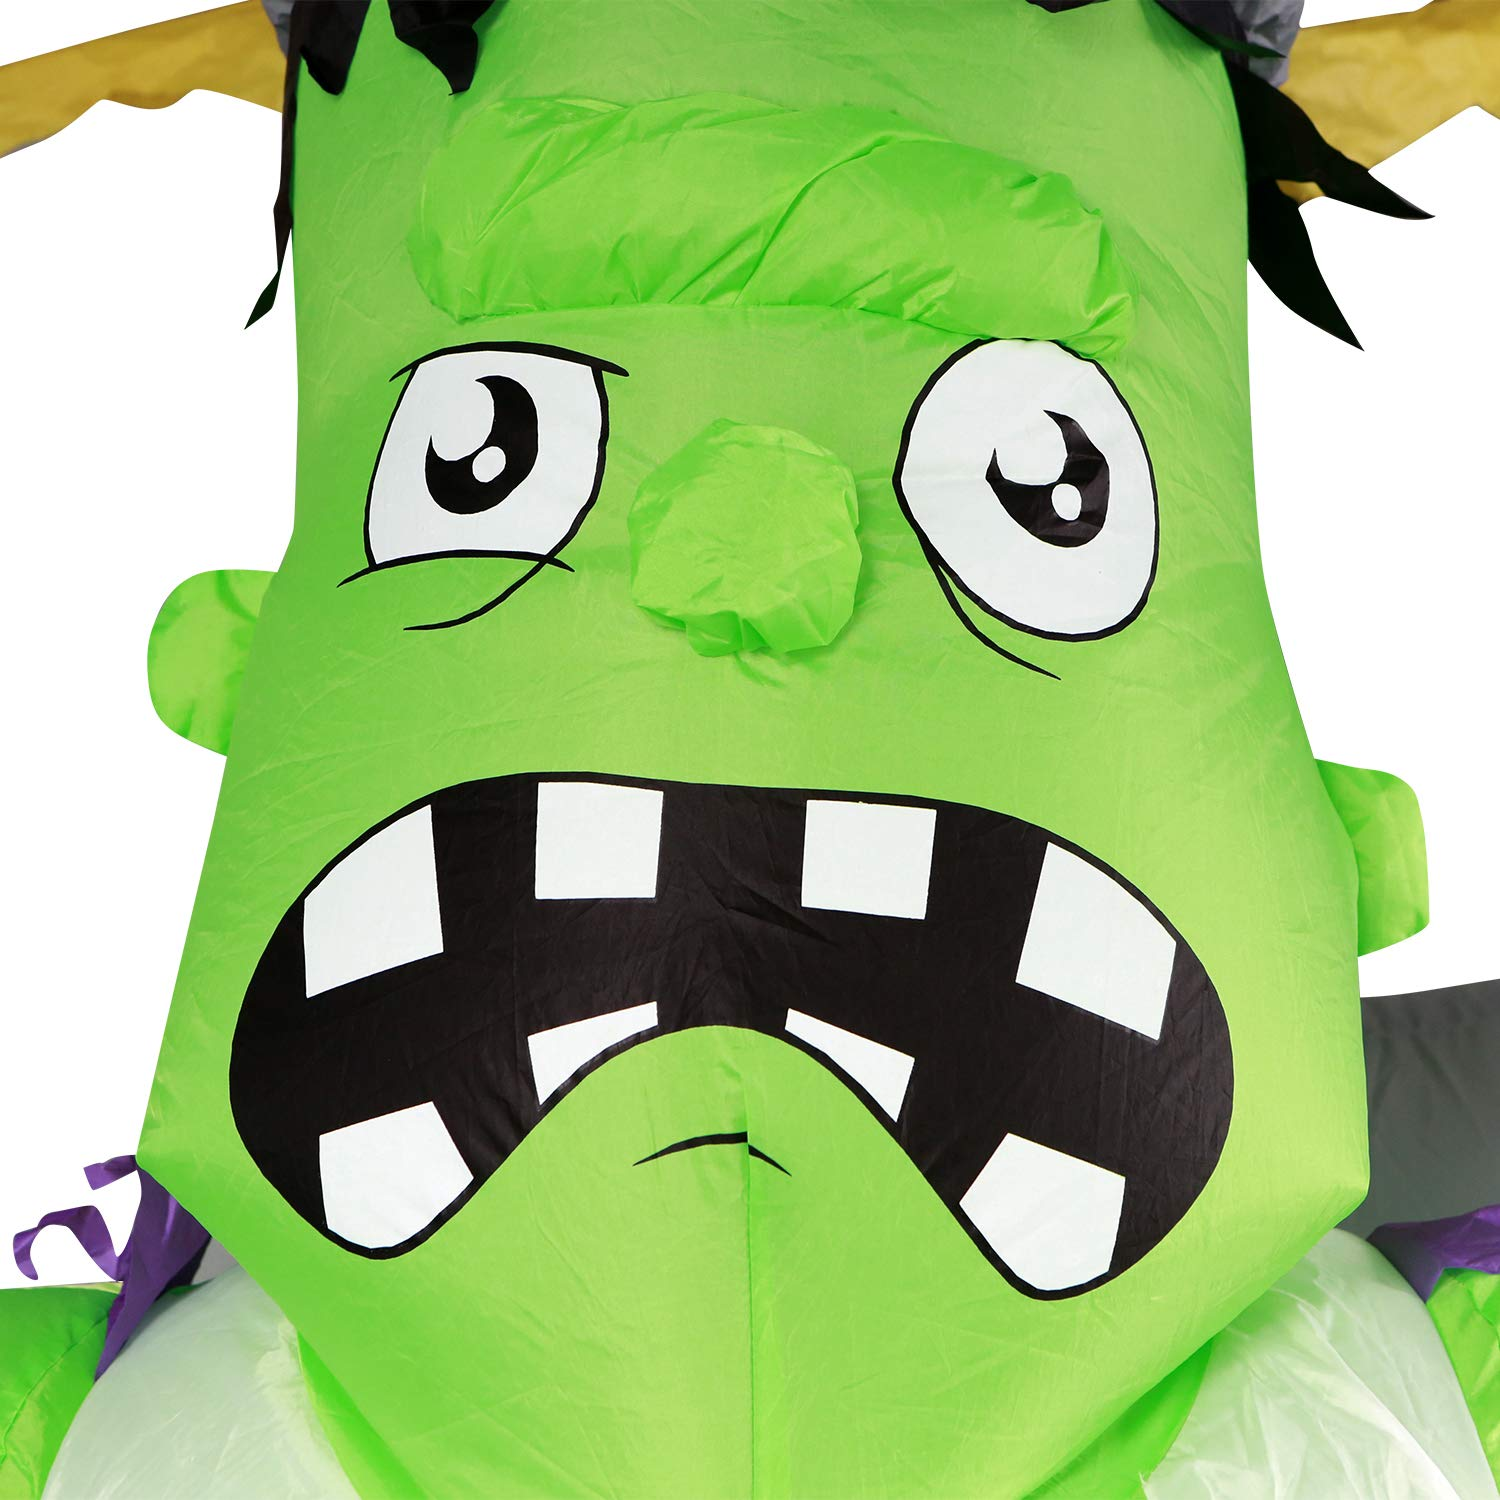 Halloween Inflatable Frankenstein Giant 7ft Tall - Lighted Decorations Airblown Spooky Large Outdoor Blow Up Yard Inflatable